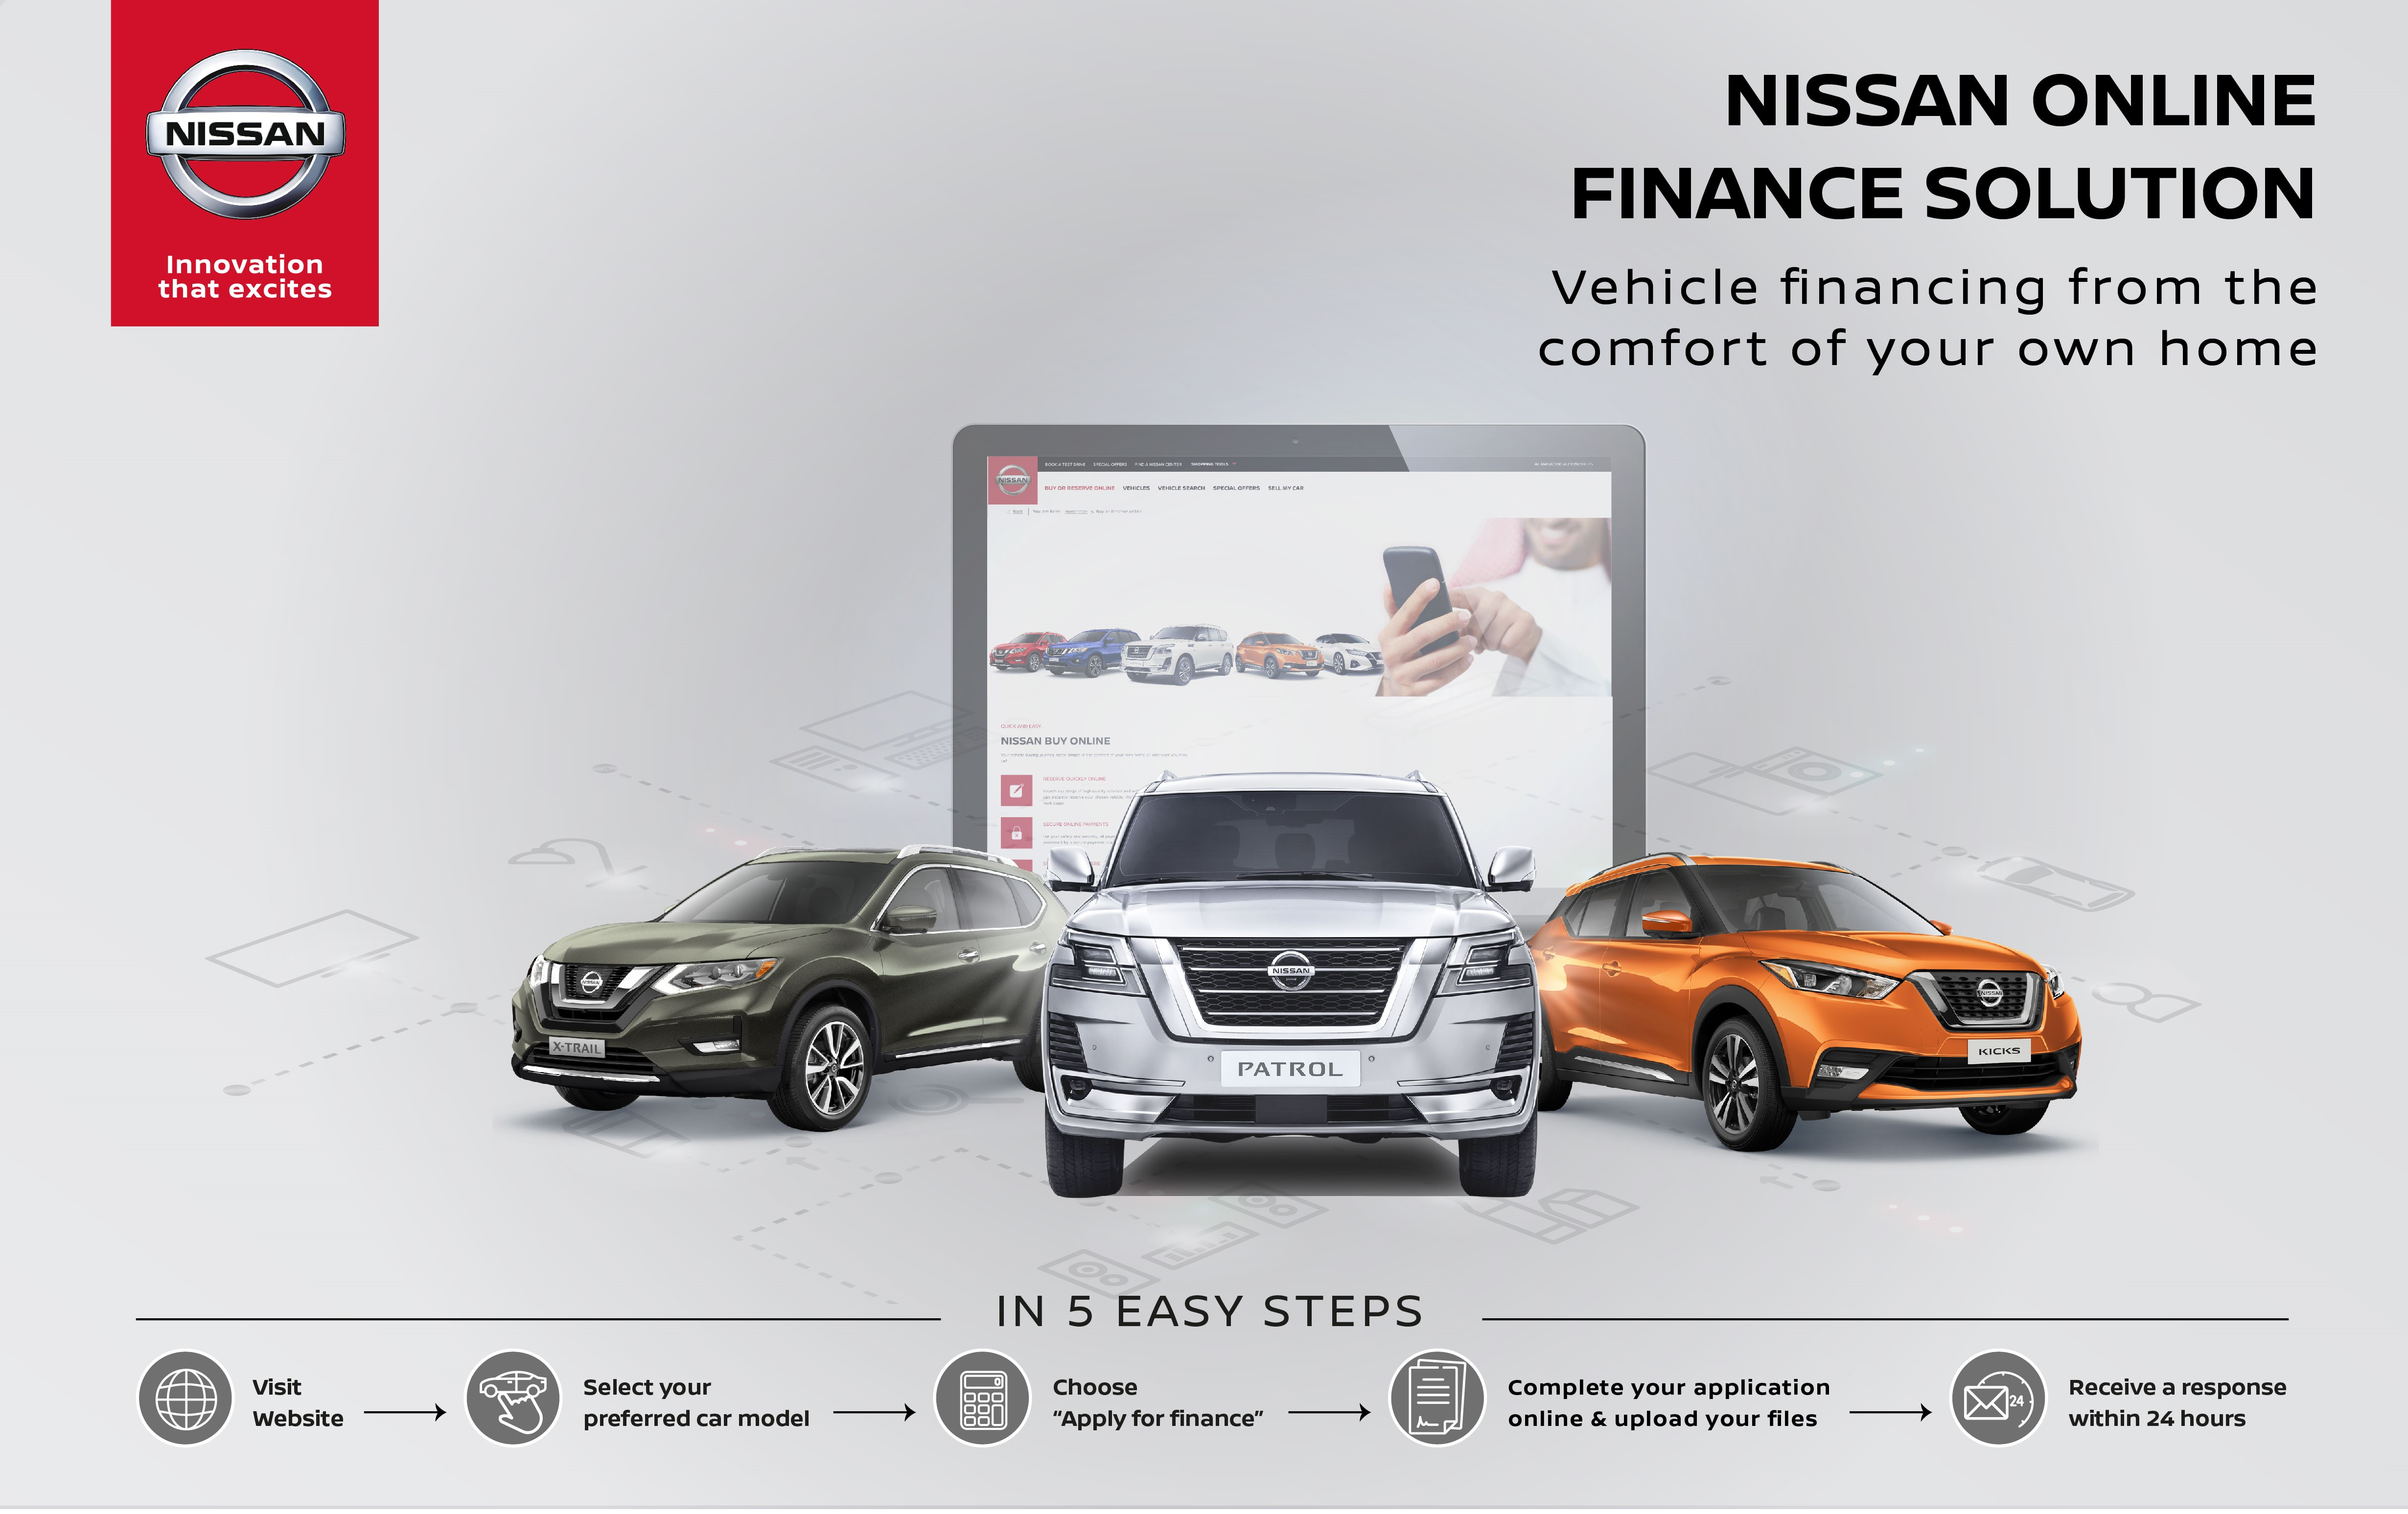 New Nissan Online Financing Solution from Al Masaood Automobiles to Accelerate Customer Journey